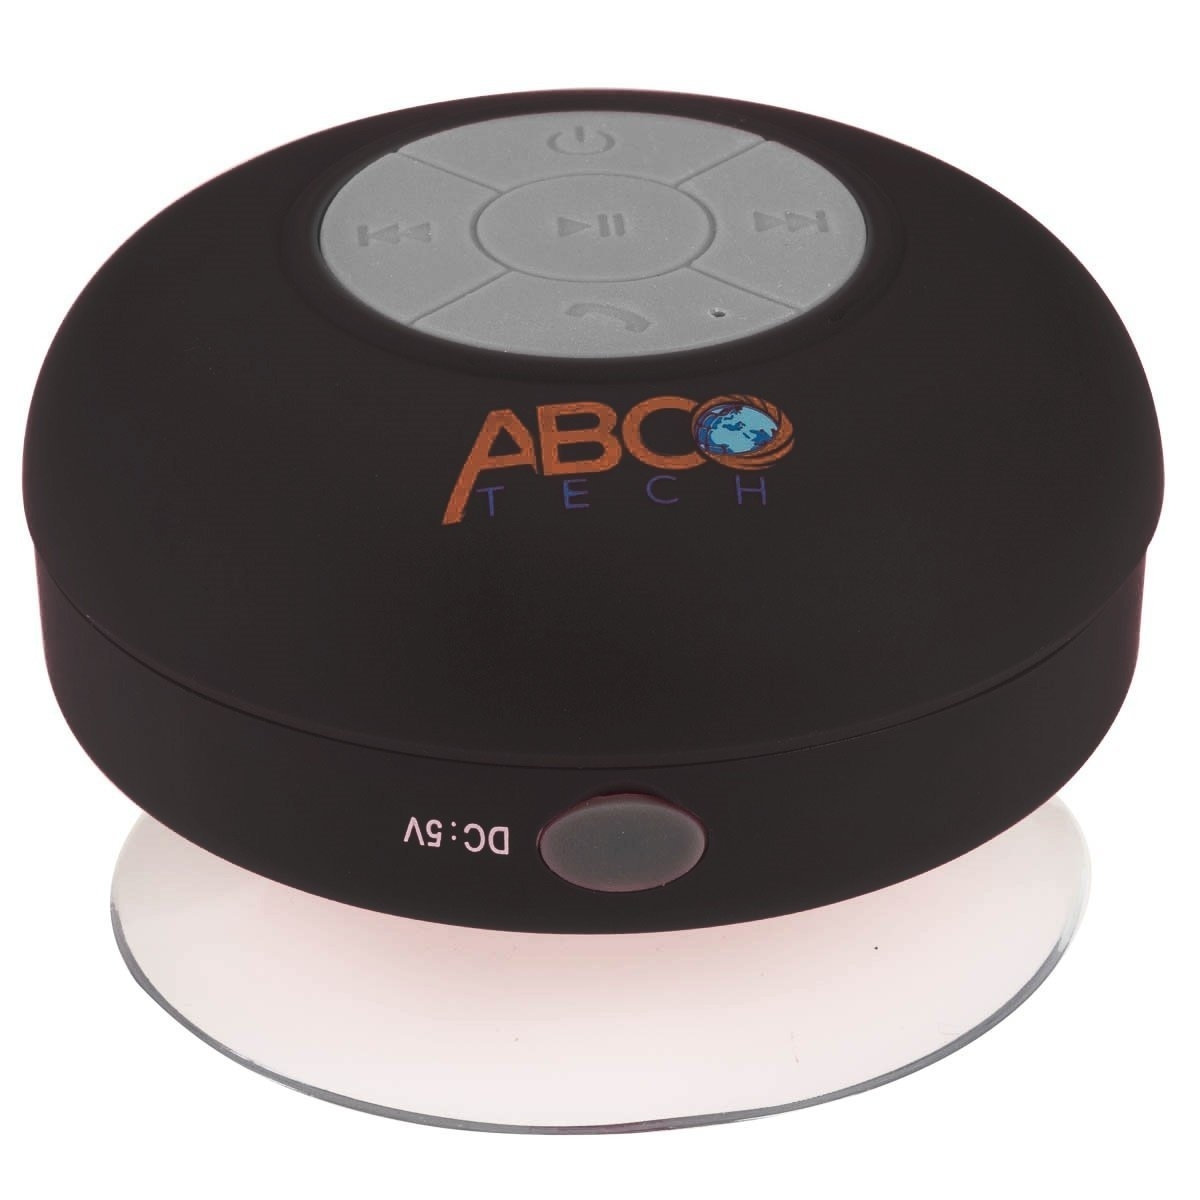 Abco Tech Water Resistant Wireless Bluetooth Shower Speaker with Suction Cup and Hands-Free Speakerphone - black 5555068c493d6f7c038b5d47